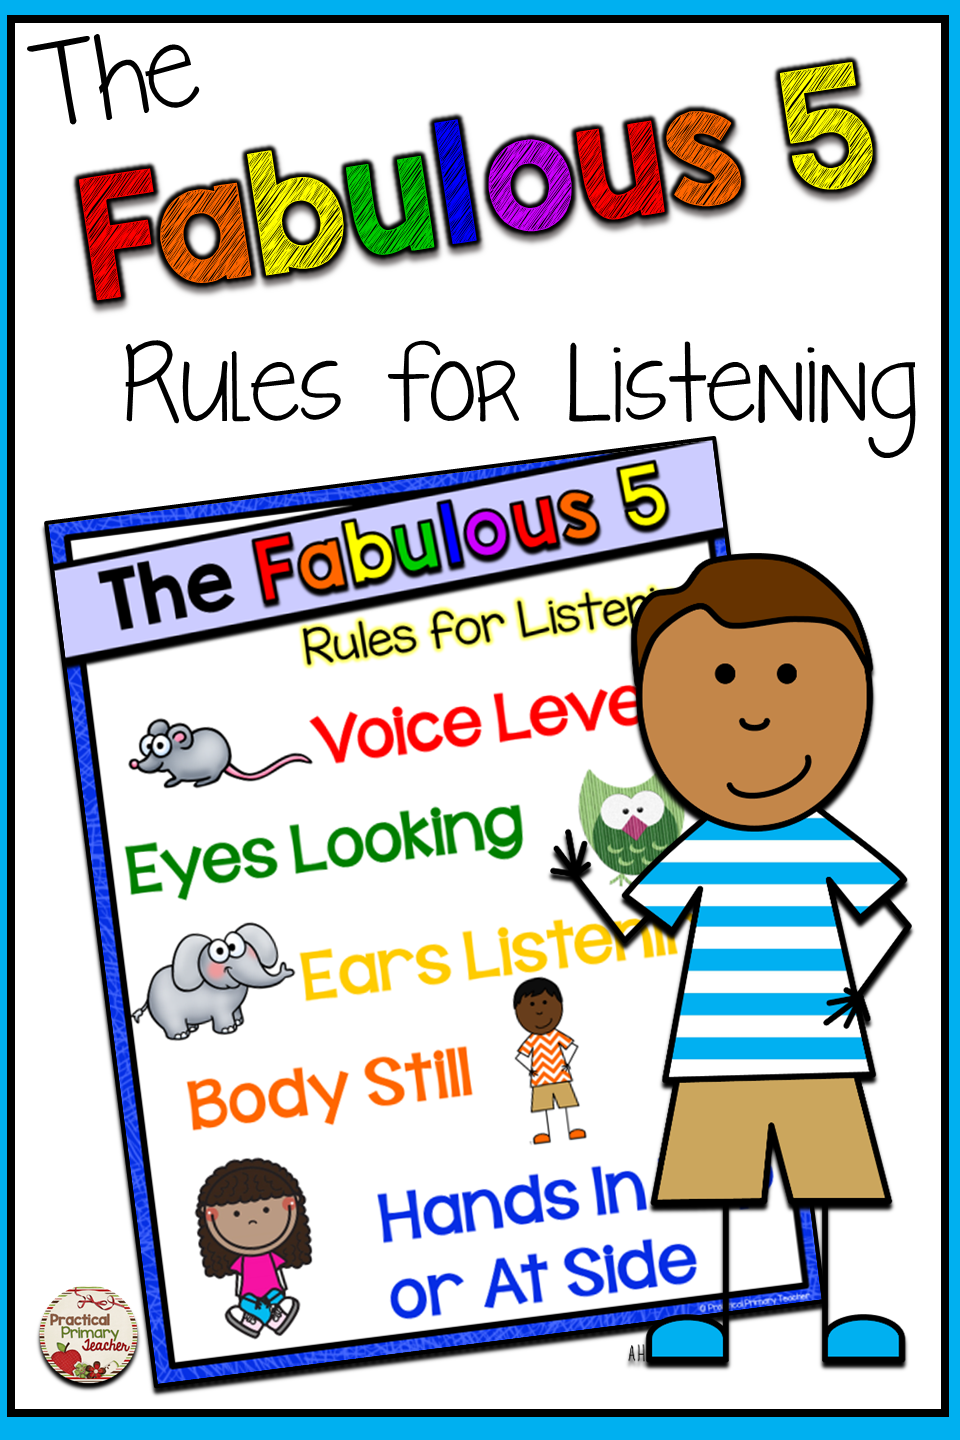 Listening Rules Chart Listening rules, Teachers toolbox